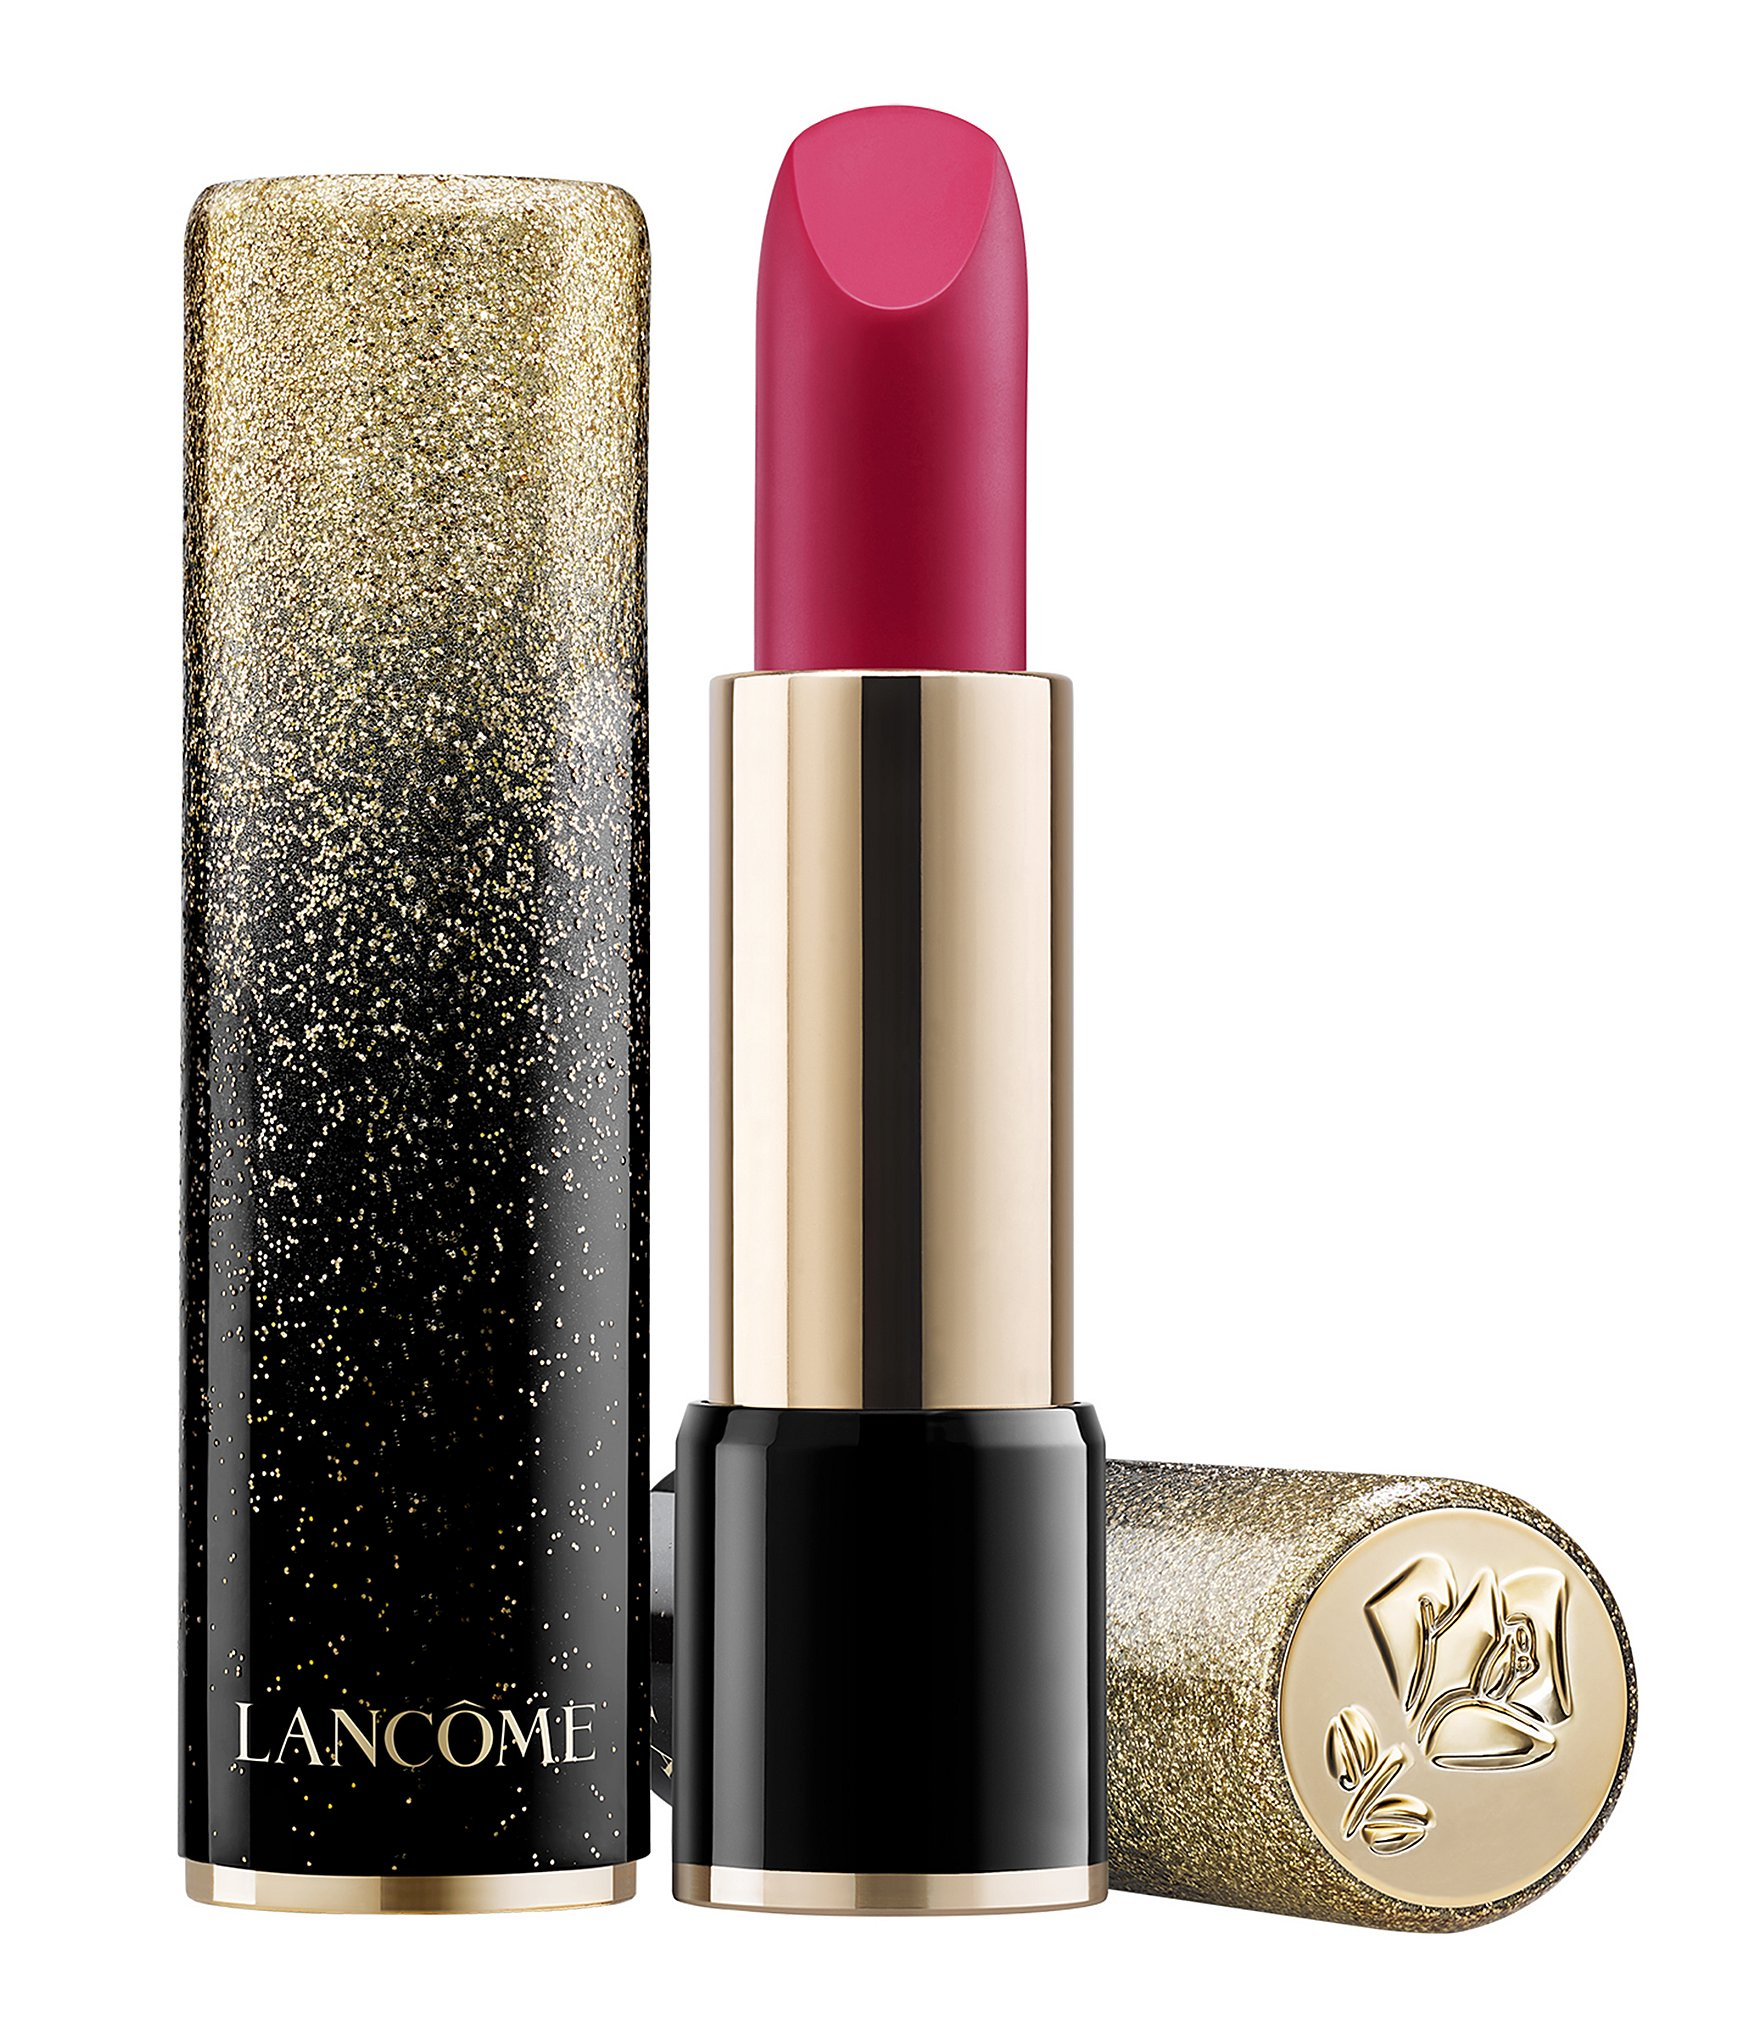 When Does Uber Pay >> Lancome L'Absolue Rouge Holiday Edition | Dillards